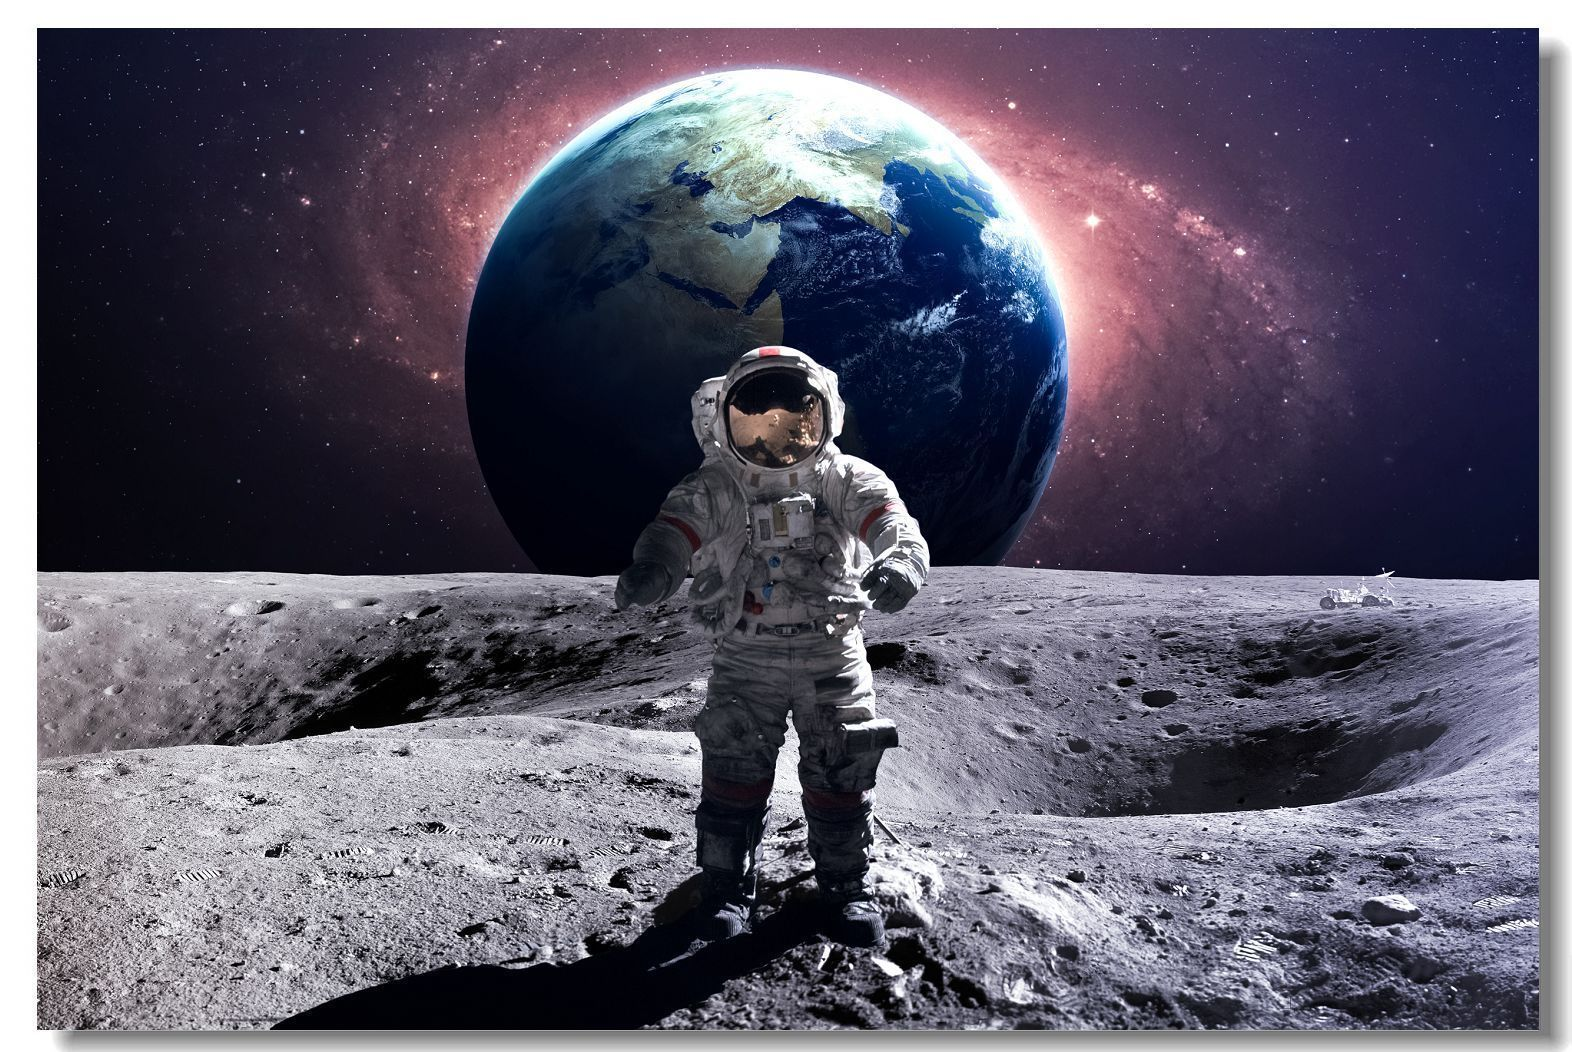 $5.99 - Poster Astronaut On The Moon In Space Earth Planet ...